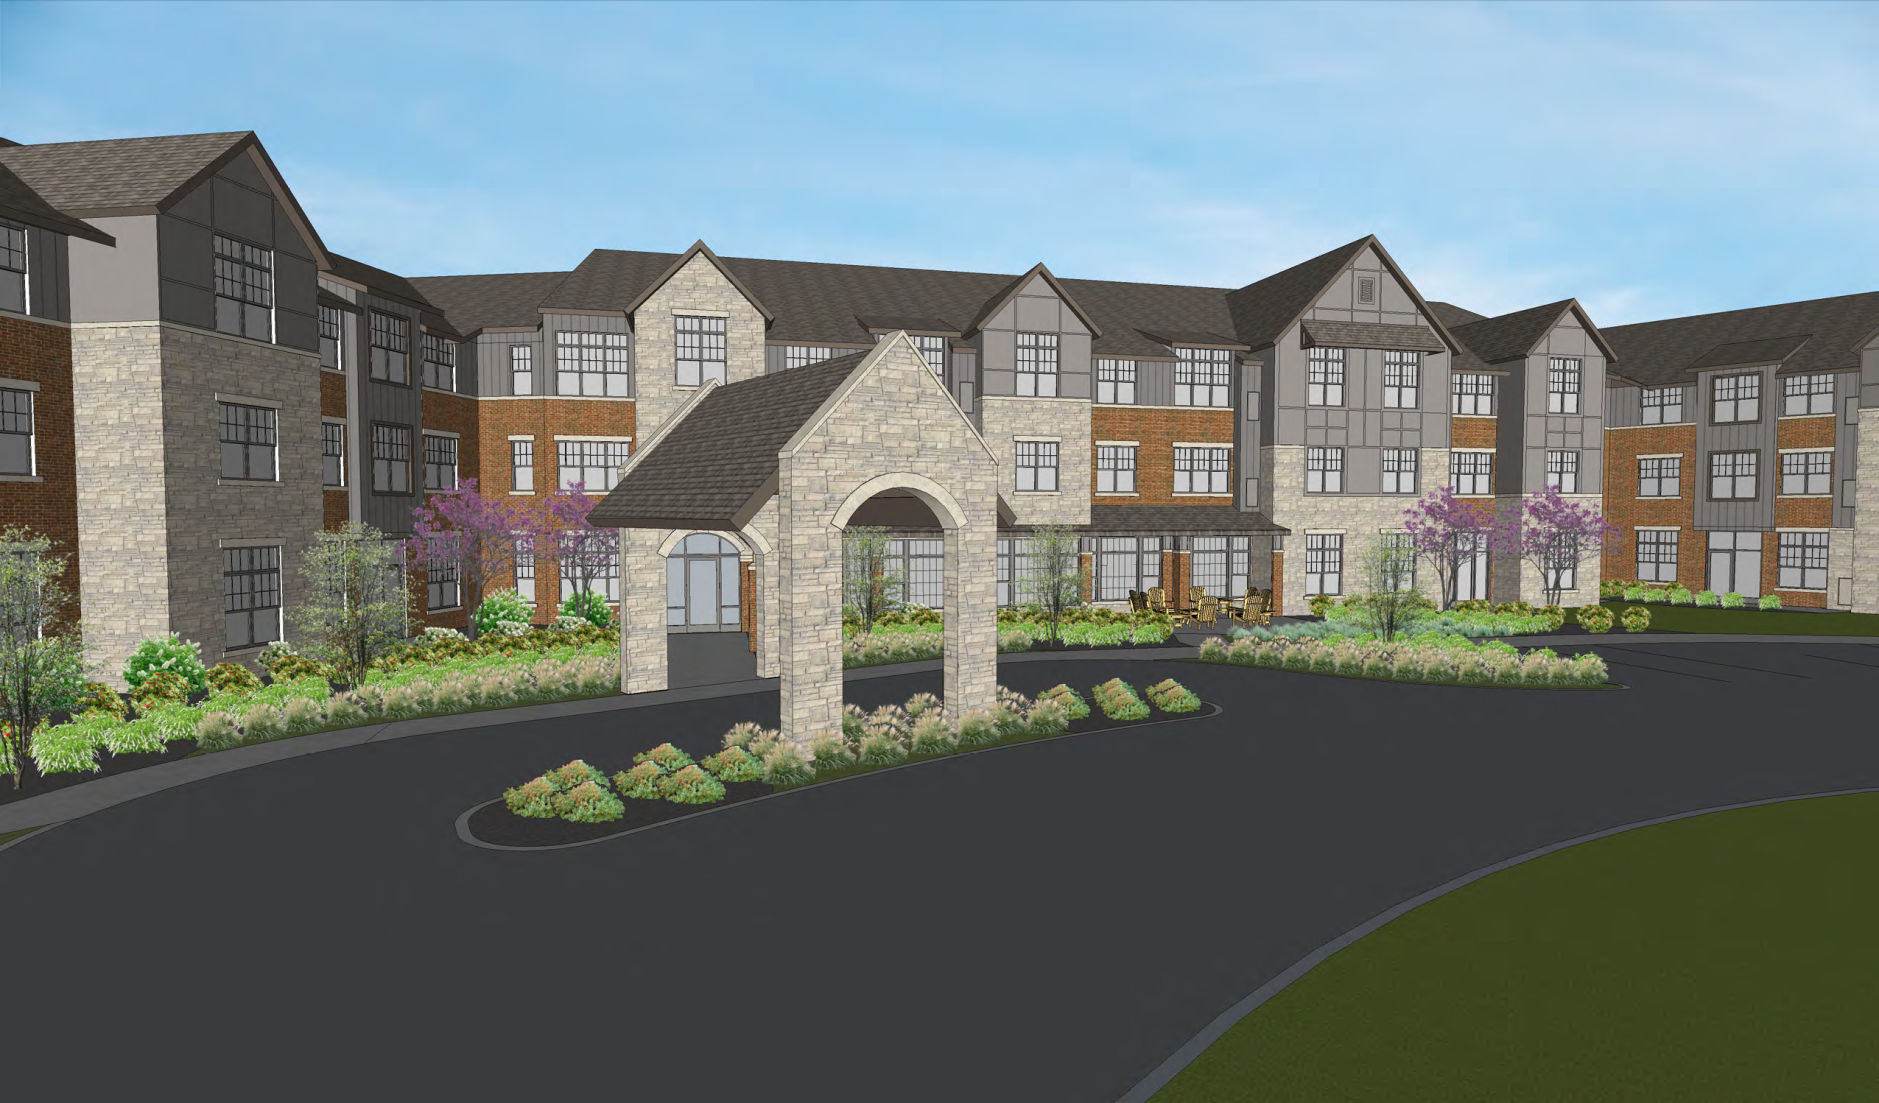 80 Independent Living Apartments To Be Built At Concord Reserve In Westlake